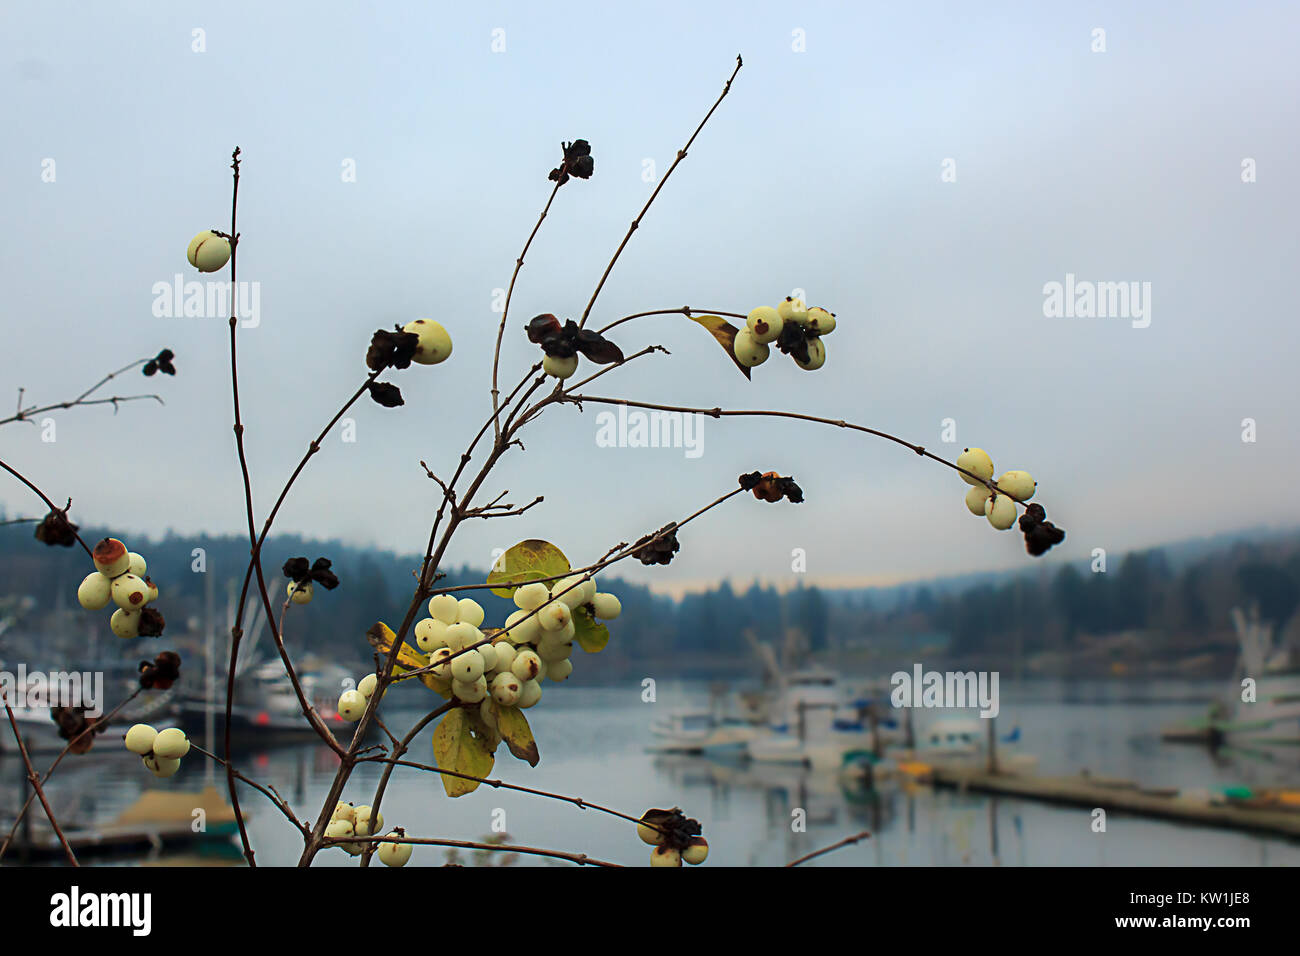 snowberries along harbor town - Stock Image